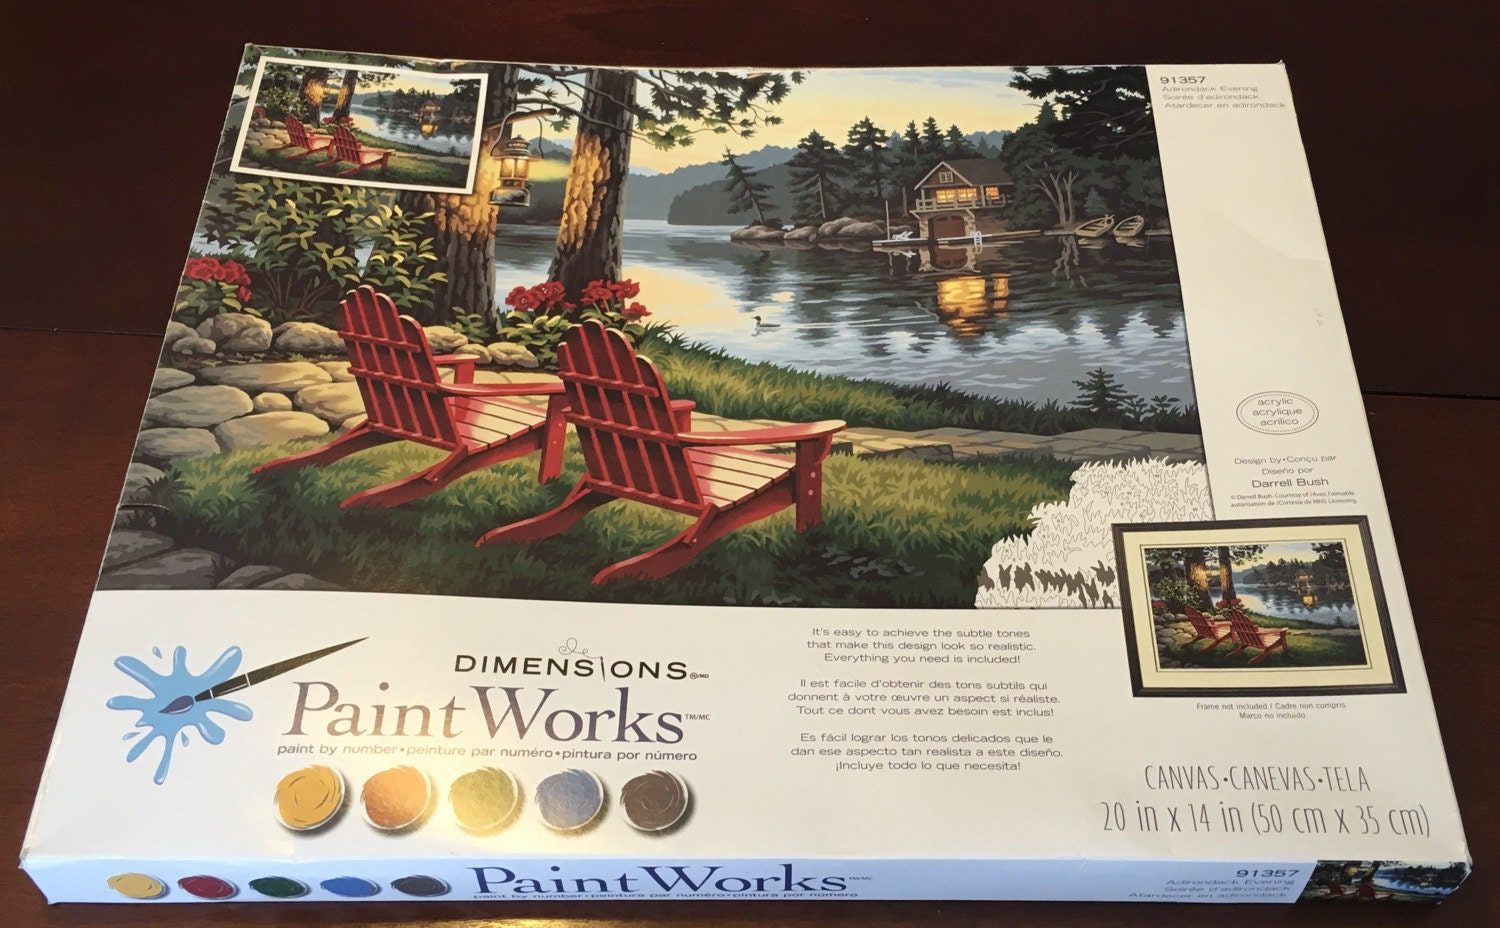 Dimensions Paintworks Paint Works Paint By Number 91357 Adirondack ...